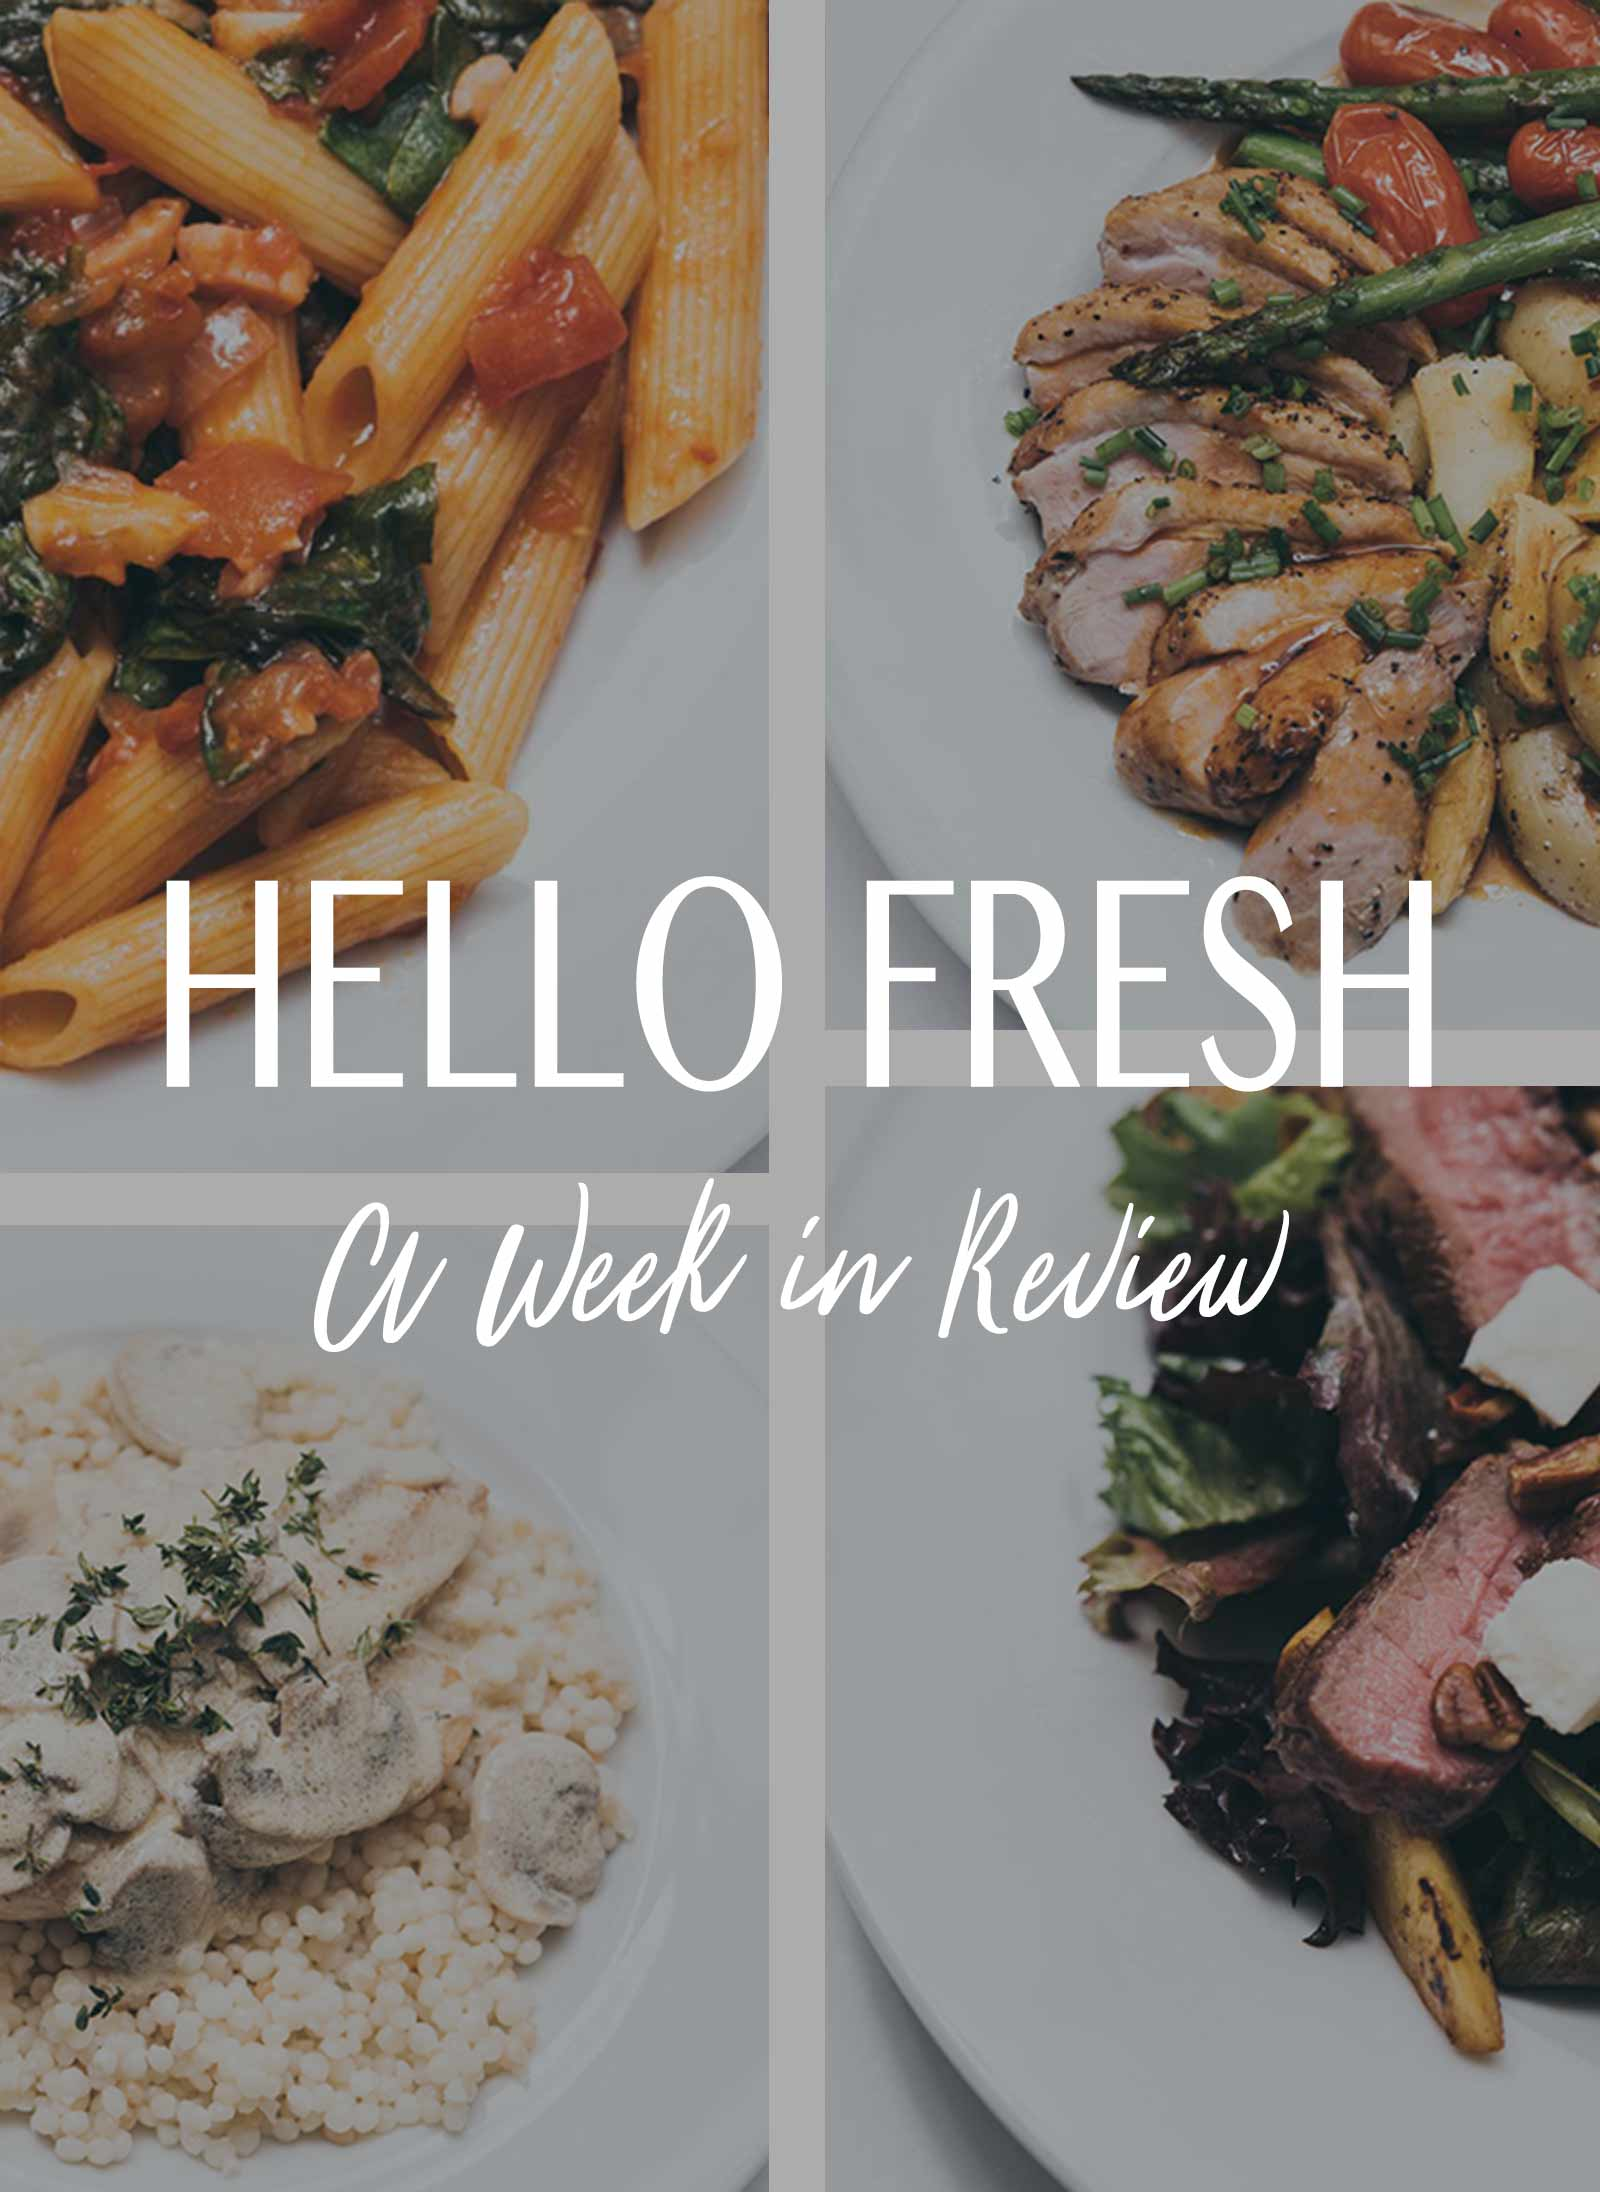 Hellofresh Coupon Code Not Working April